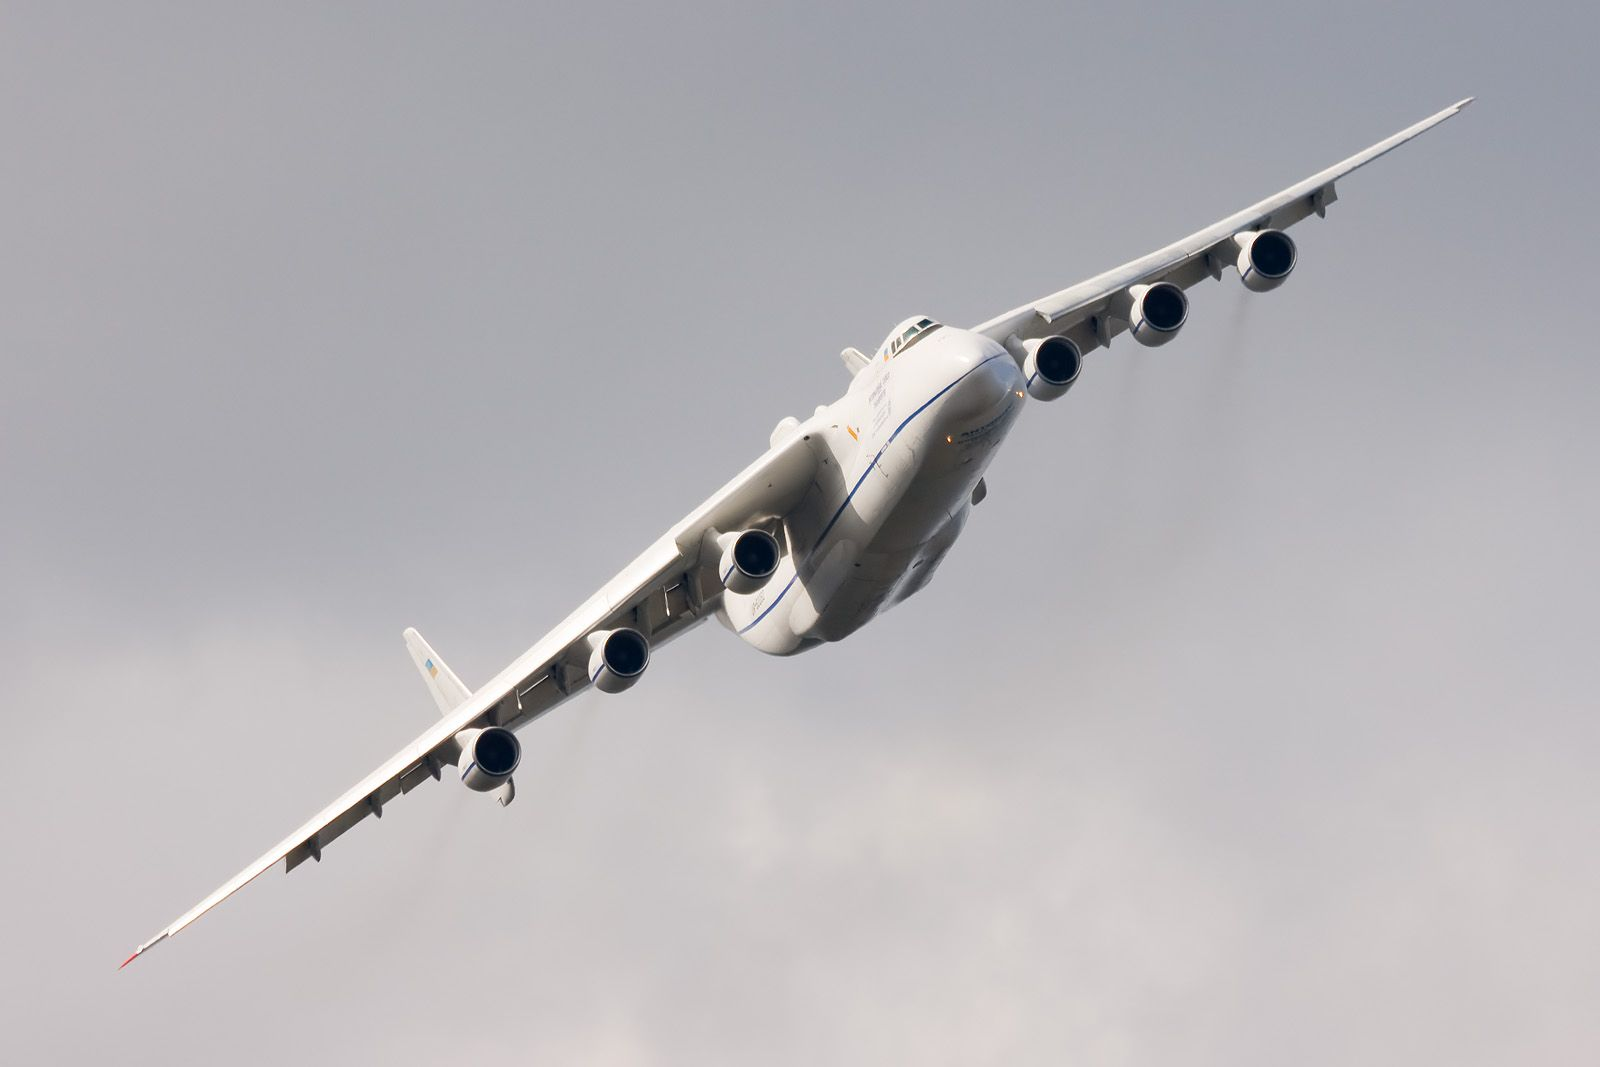 The World's Largest Airplane Flies Again